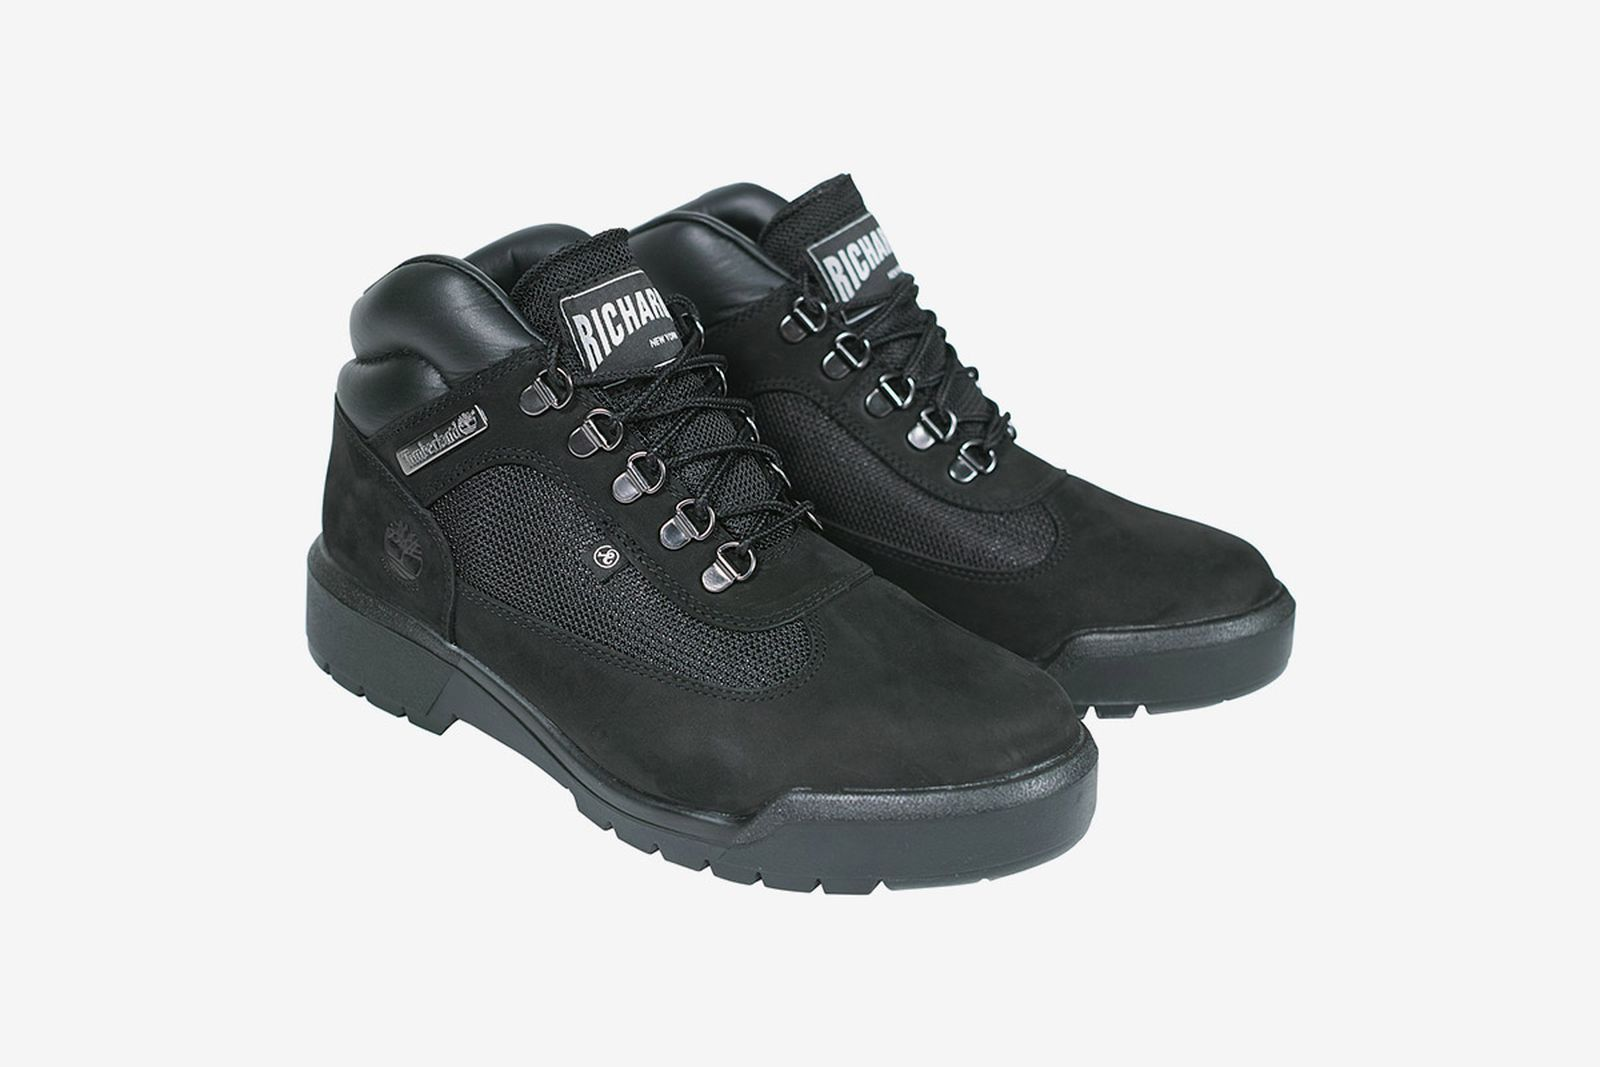 richardson-timberland-field-boot-release-date-price-04